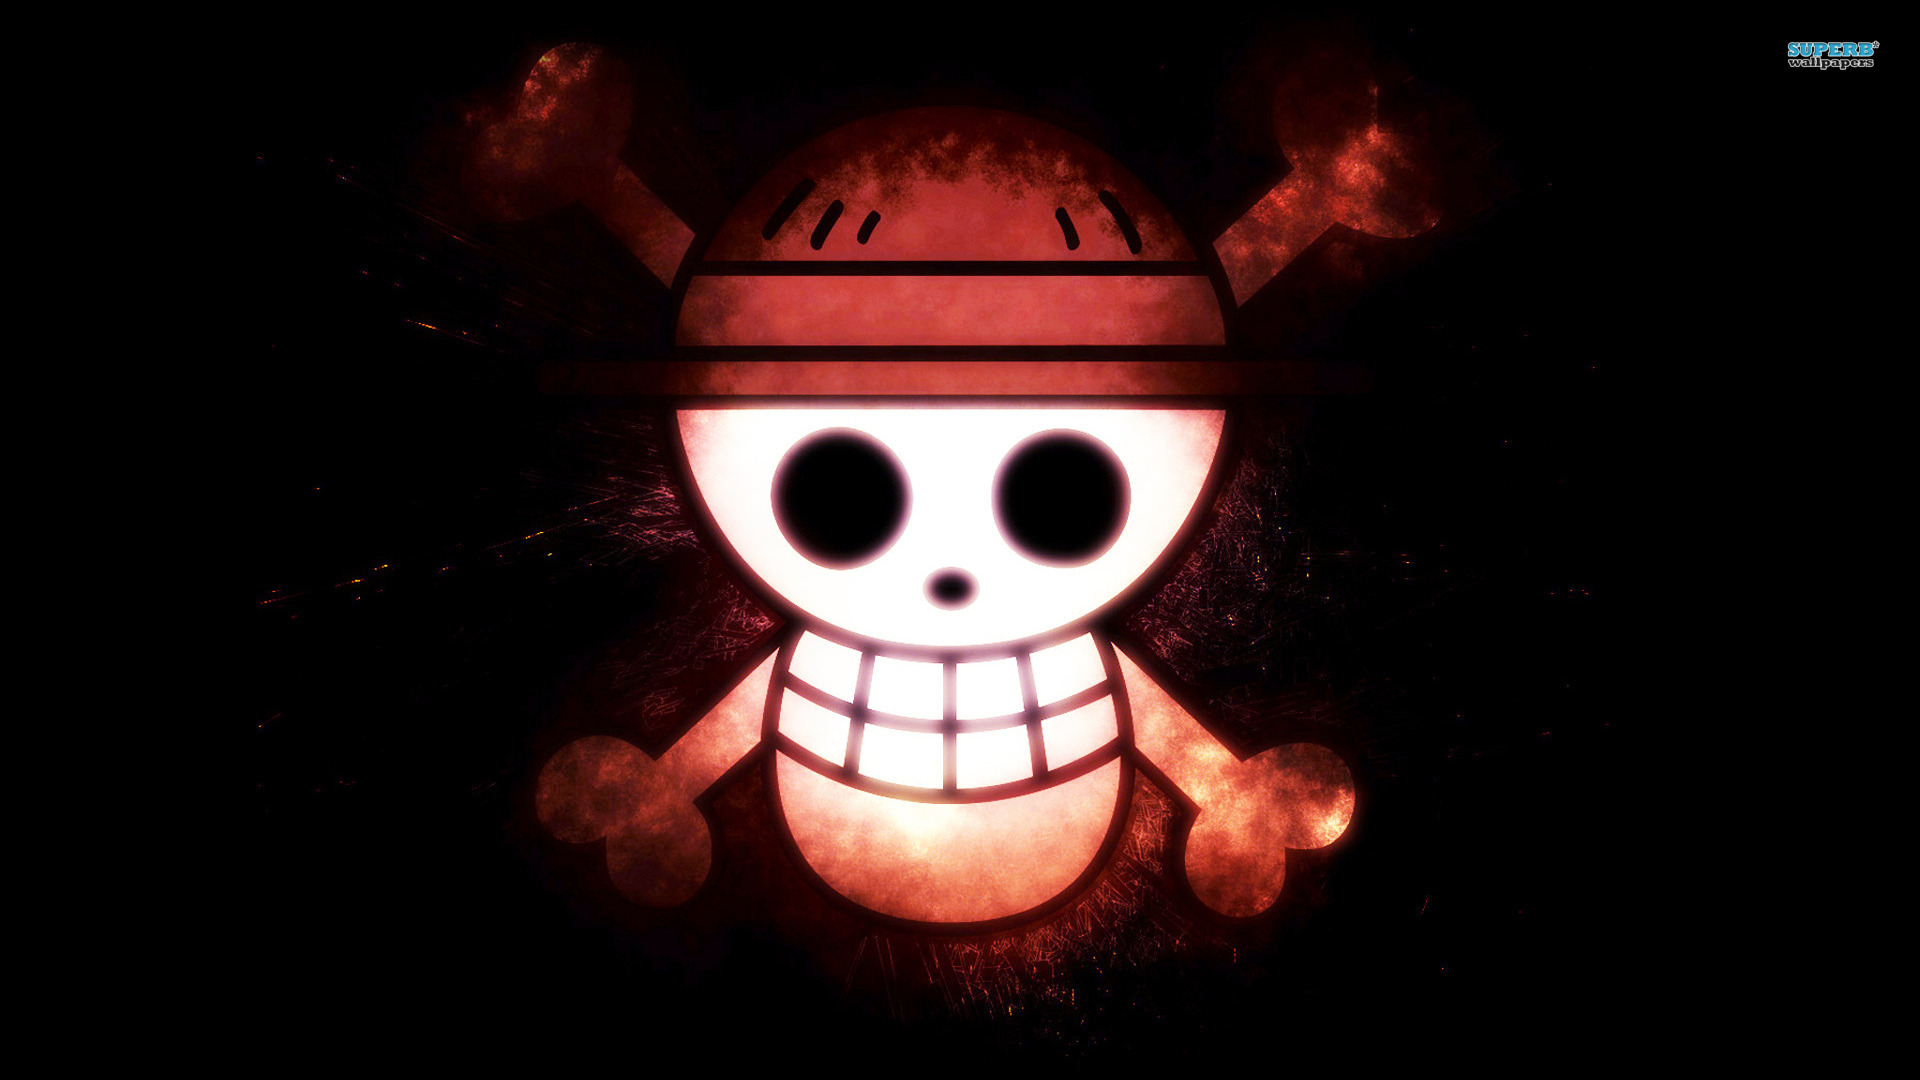 Cool 3d Skull Wallpapers One Piece Wallpapers High Quality Download Free